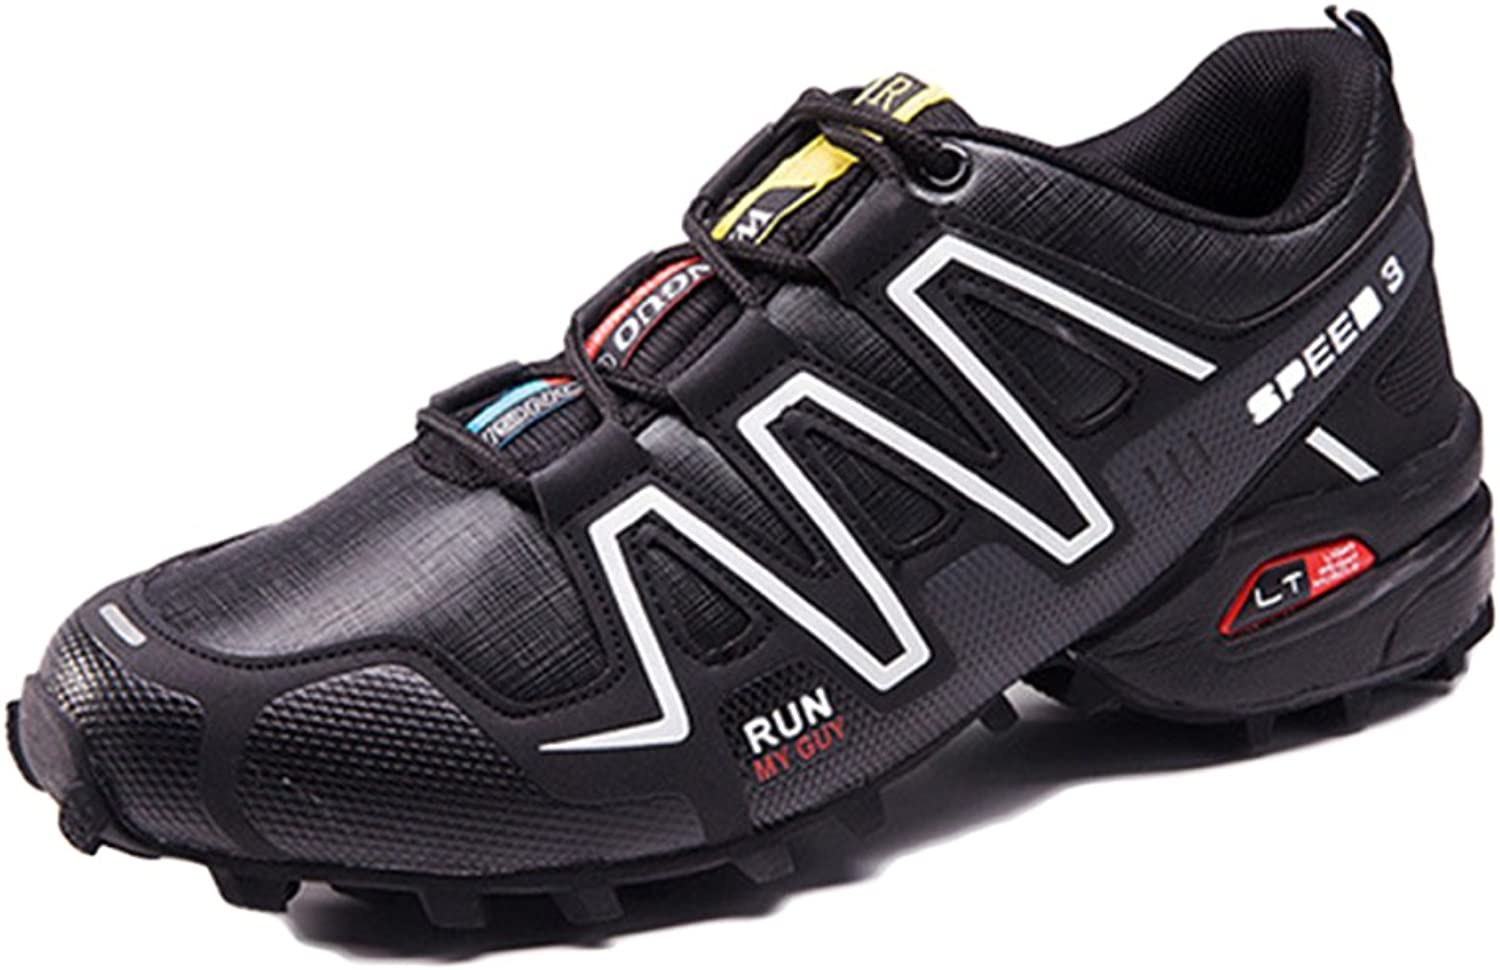 ASJUNQ Cross-Country Running shoes Men's Outdoor Sports Hiking shoes,Black-48